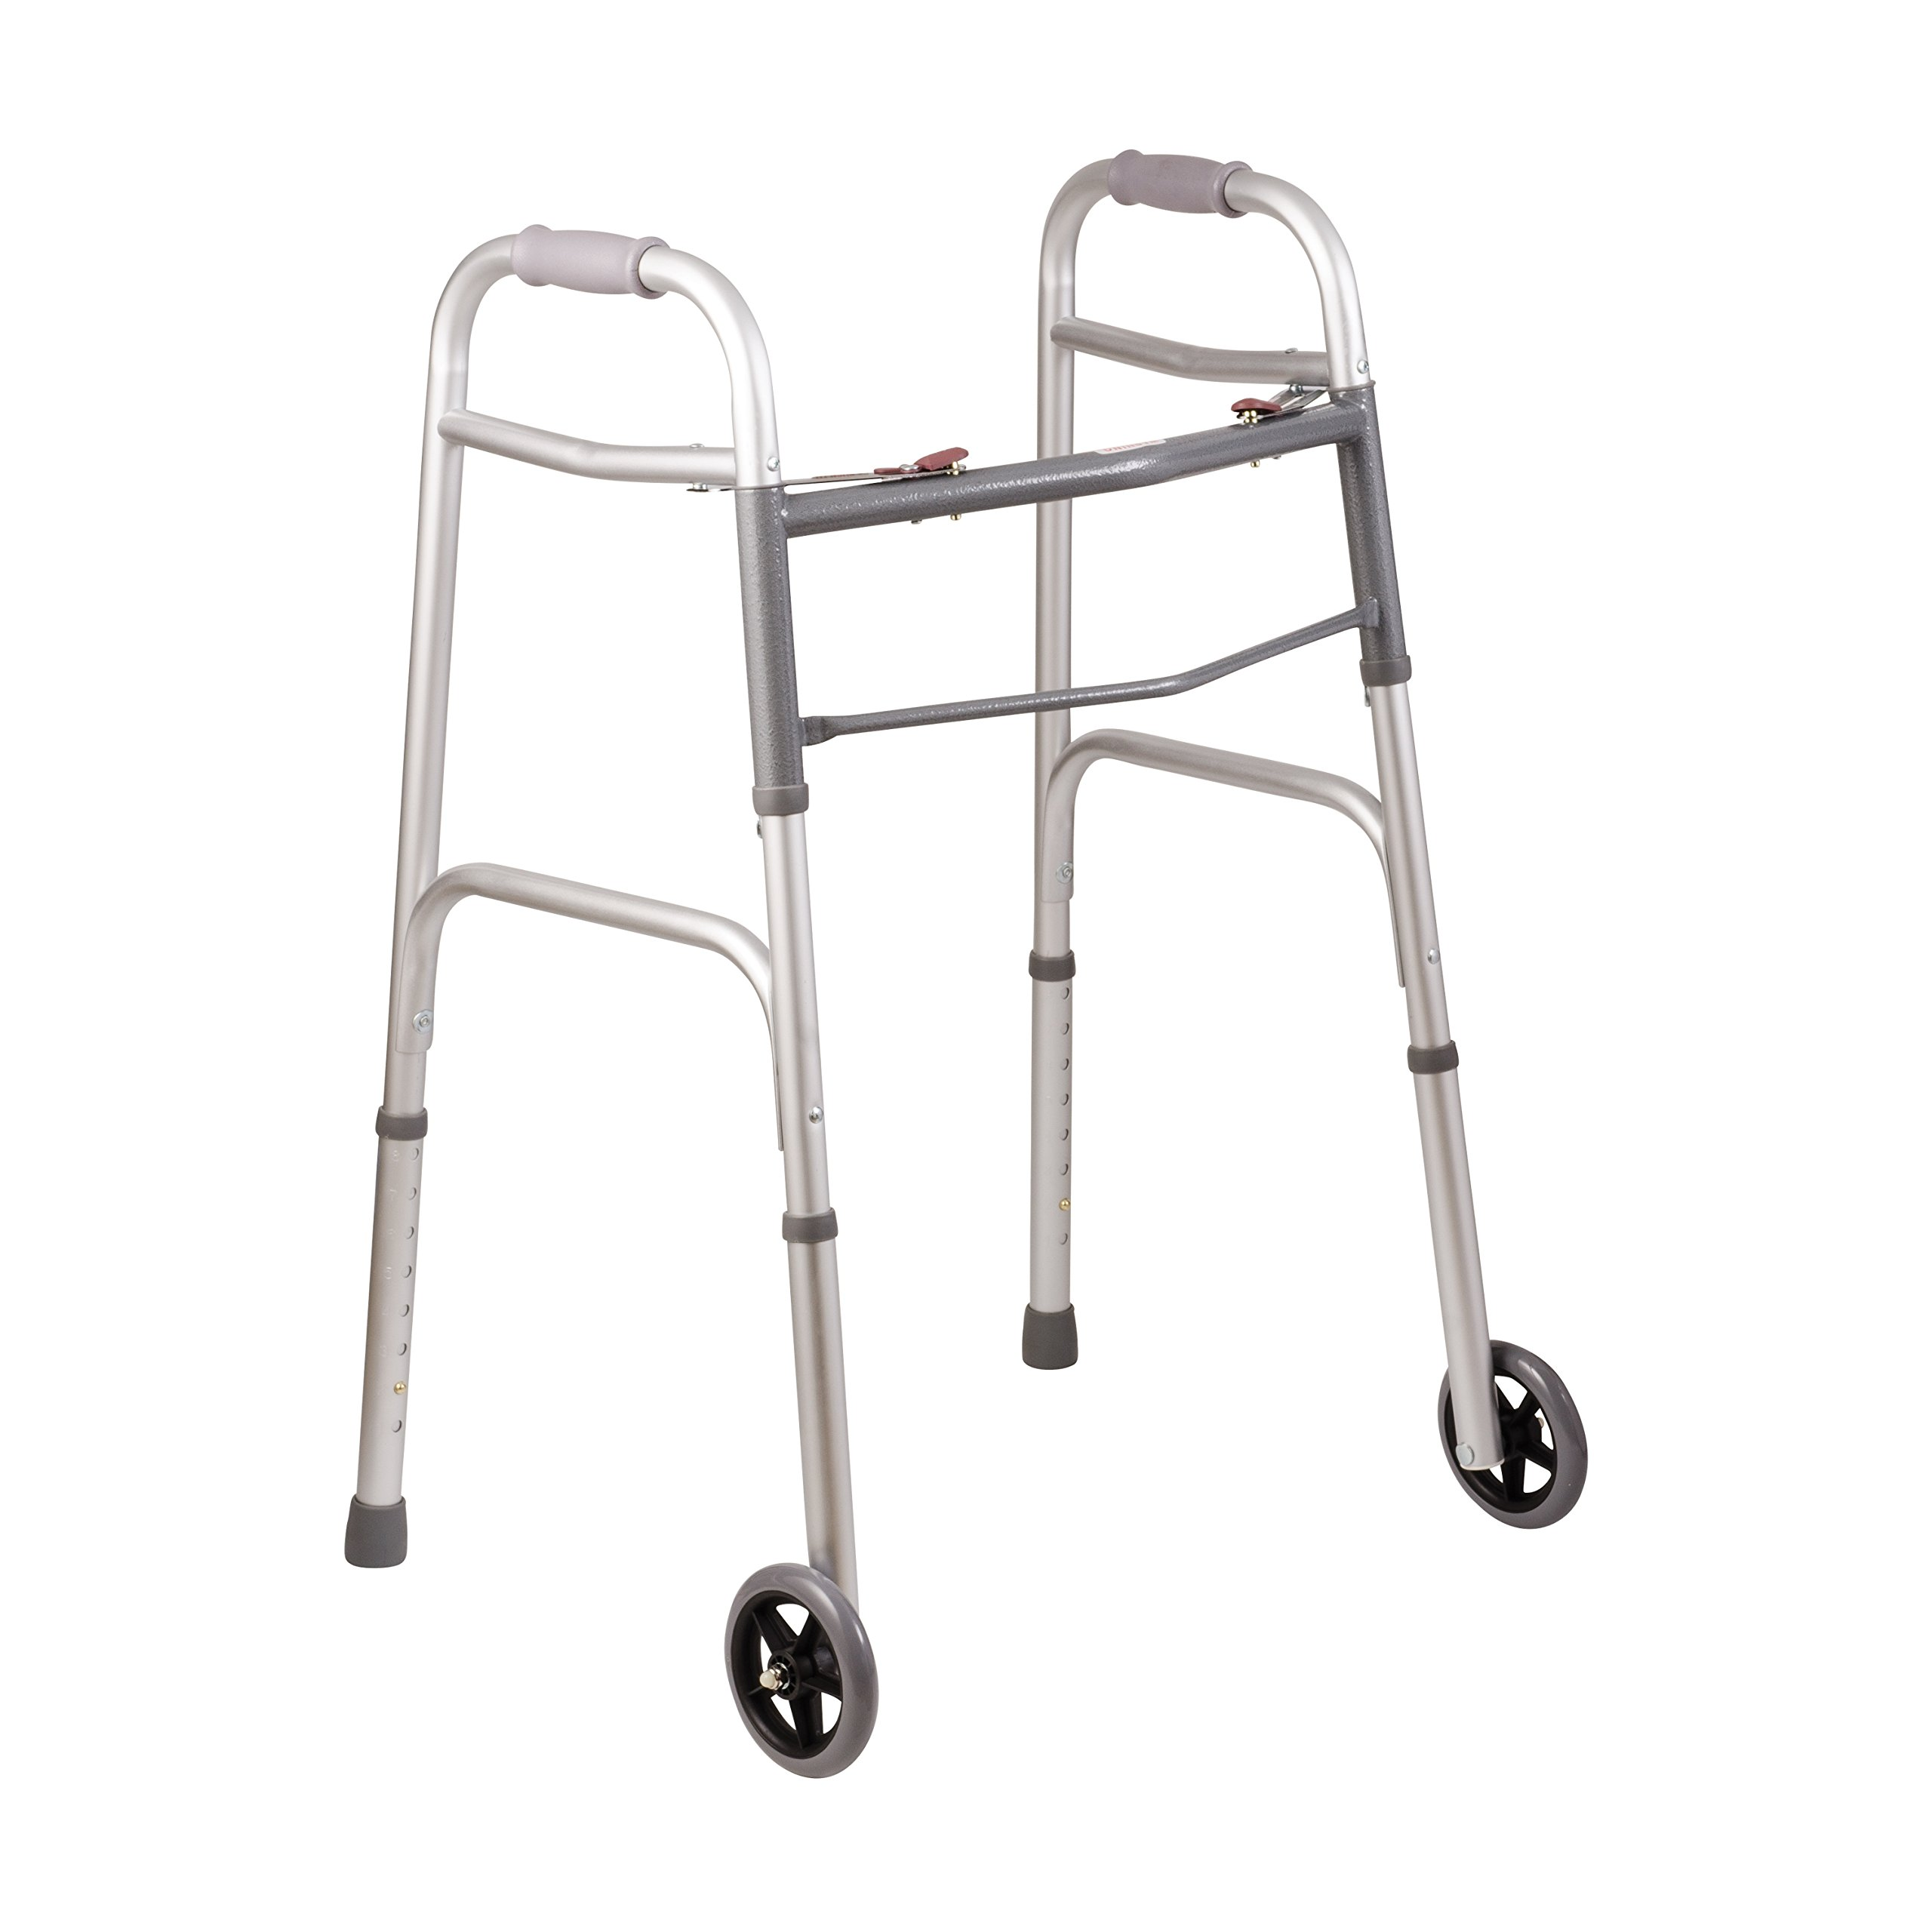 DMI Lightweight Aluminum Folding Walker with Easy Two Button Release, 5 Inch Wheels, Adjustable Height, No Assembly Needed, Silver by Duro-Med